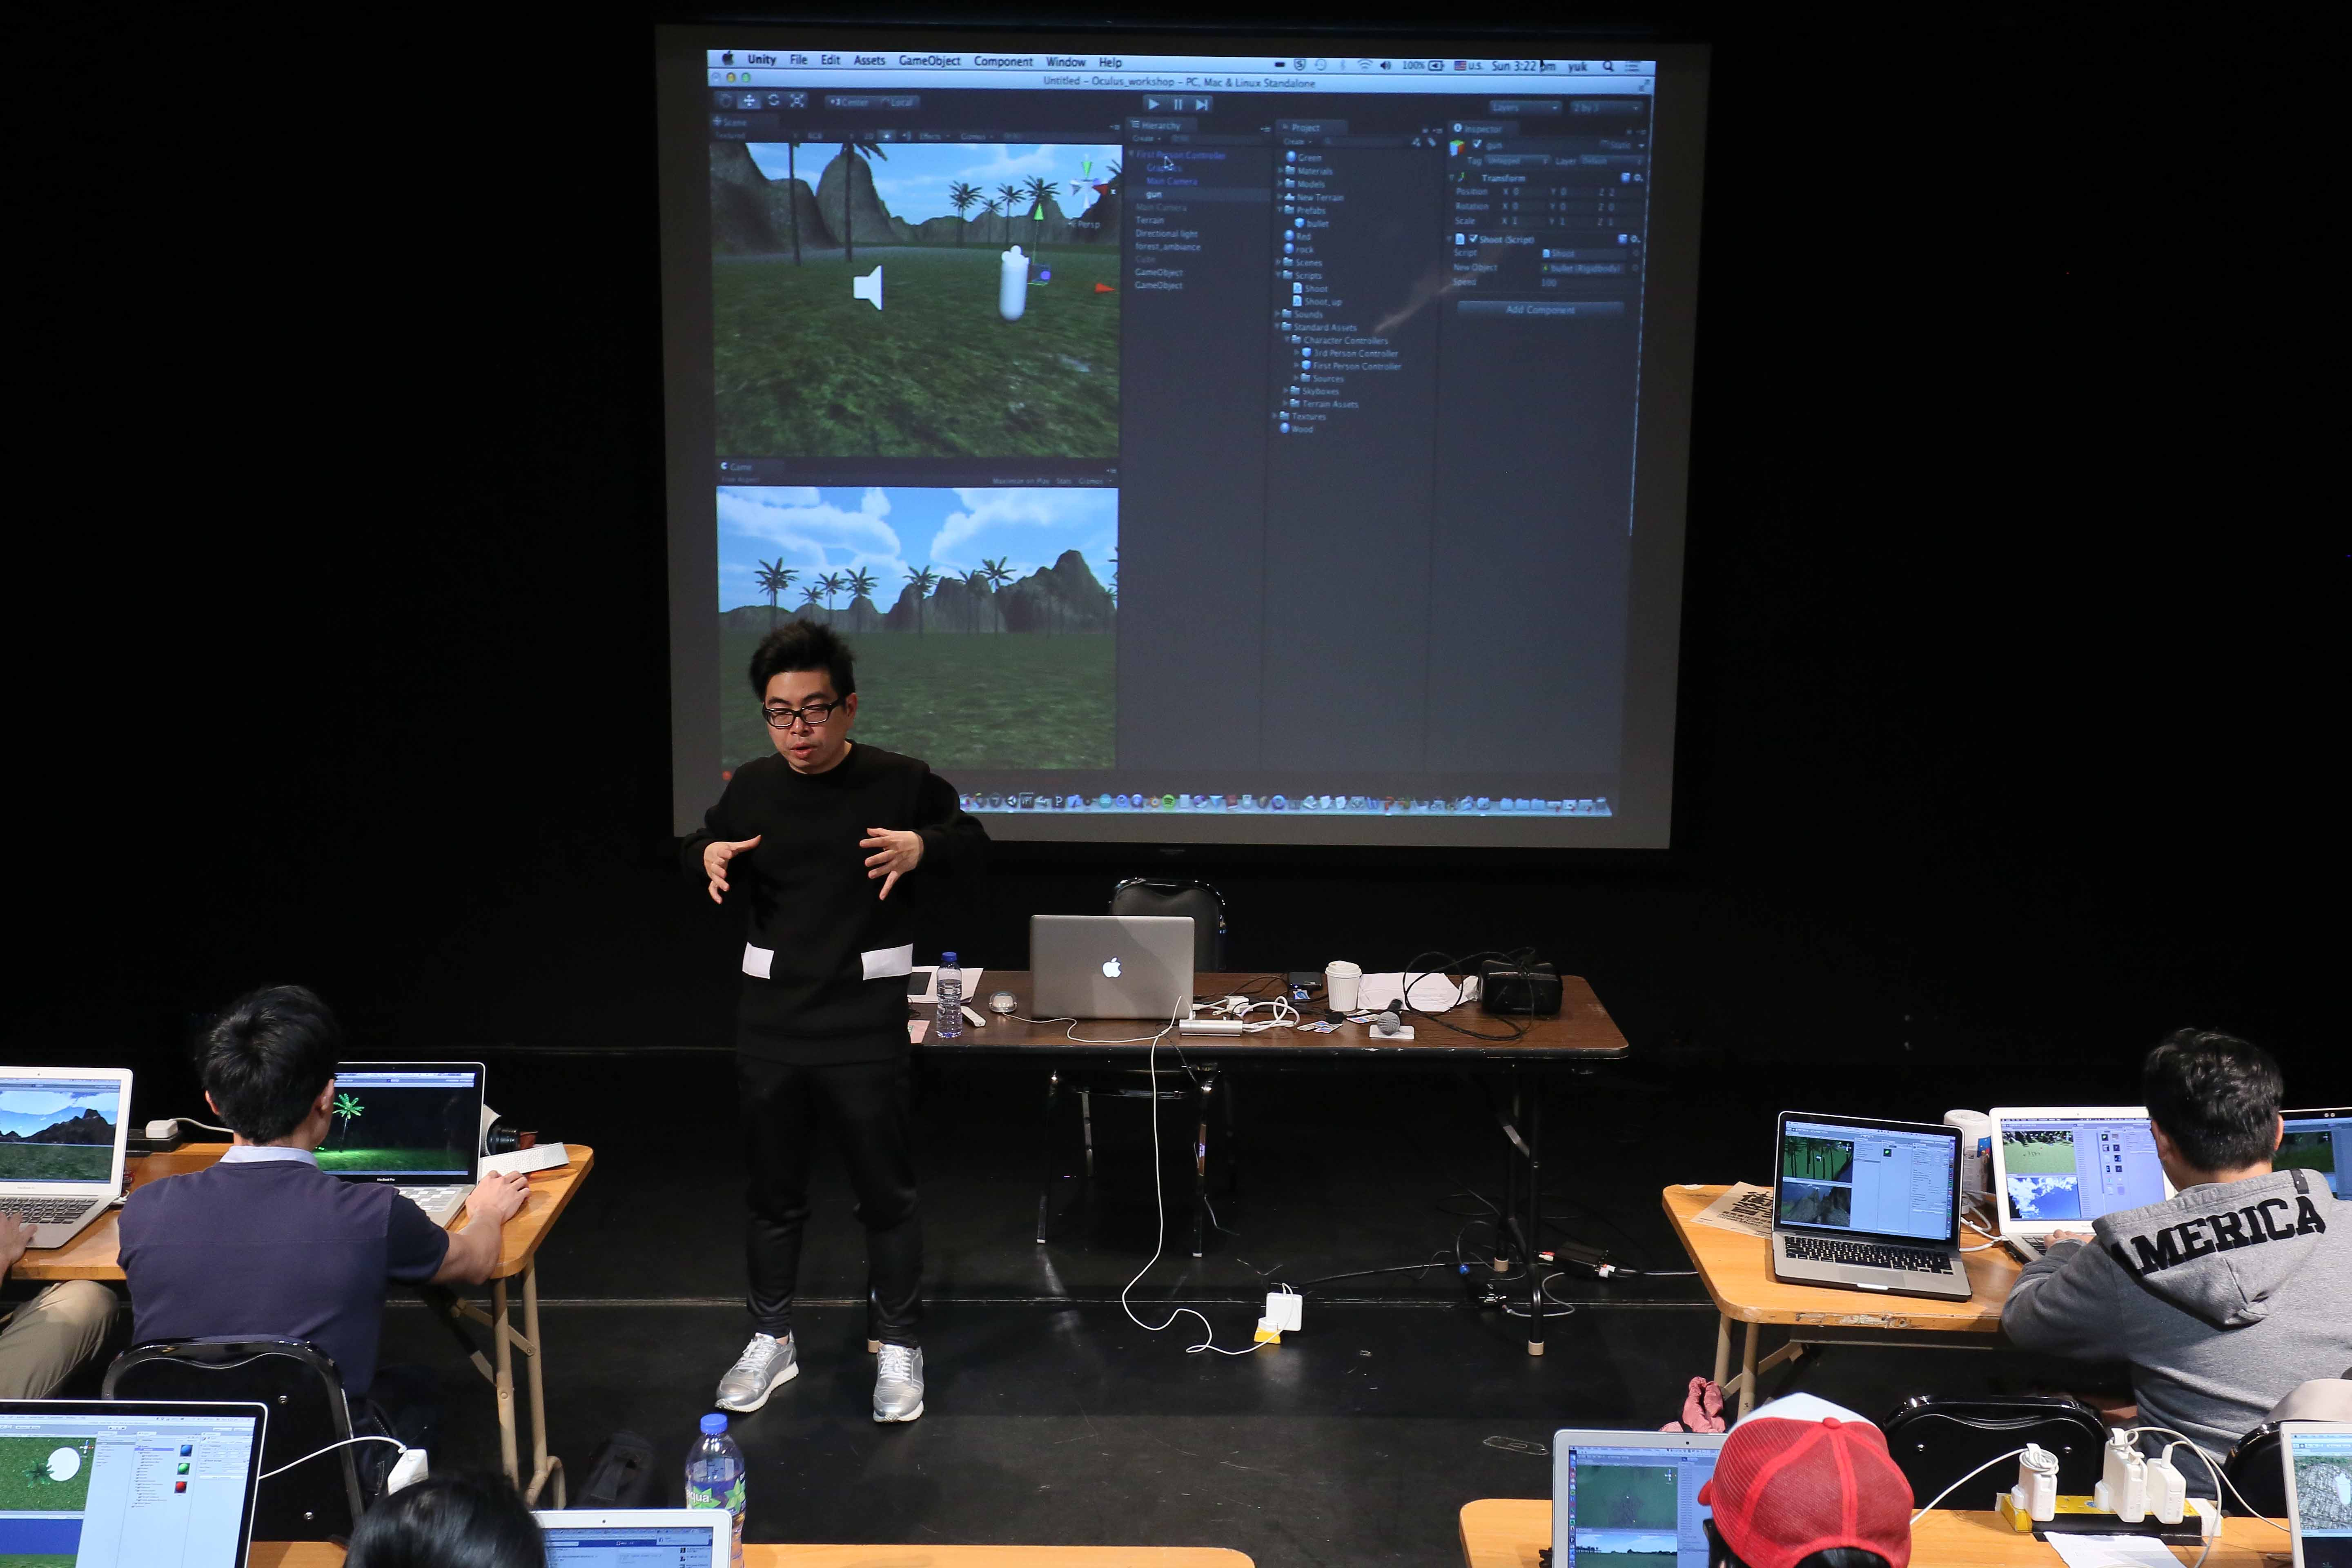 Ip Yuk-yiu introduced Unity, a freeware for creating 2D/3D games and interactive experiences.